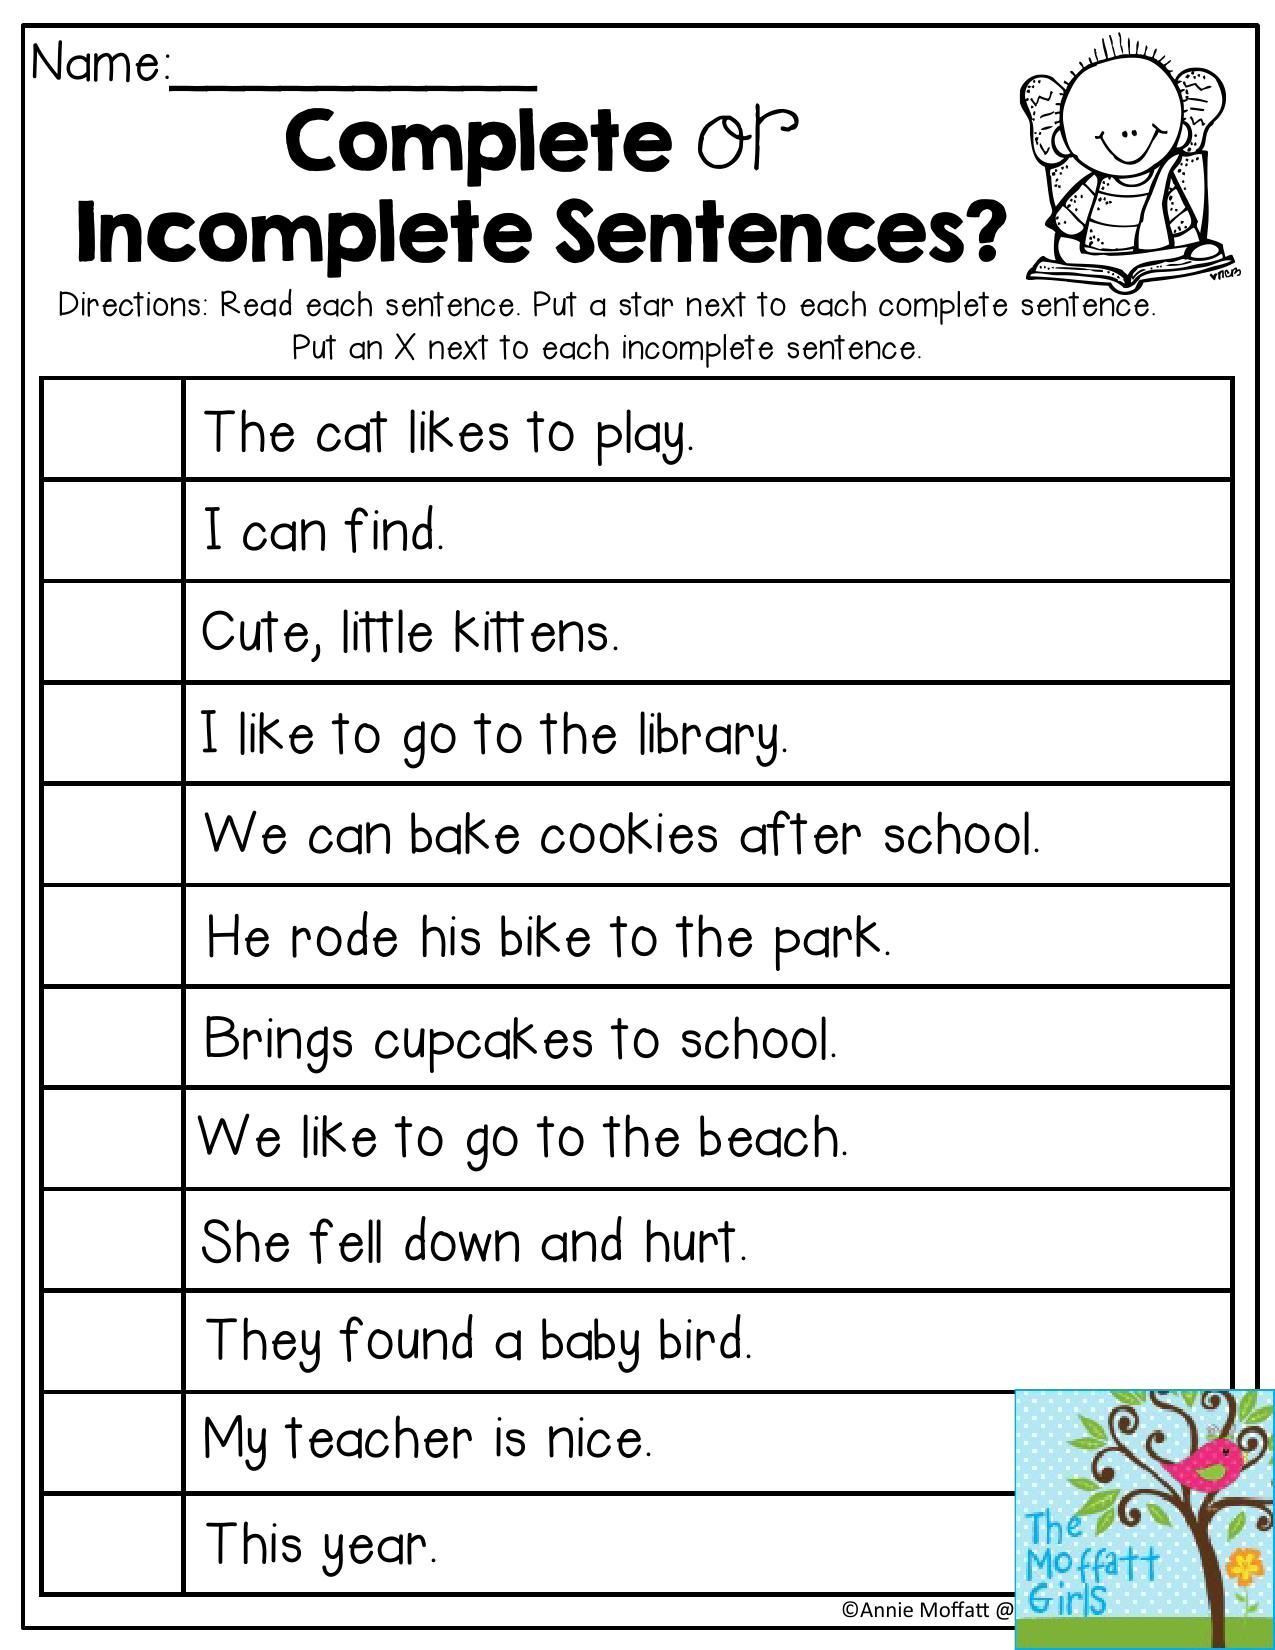 Complete Sentences Worksheet 1st Grade Back to School Packets